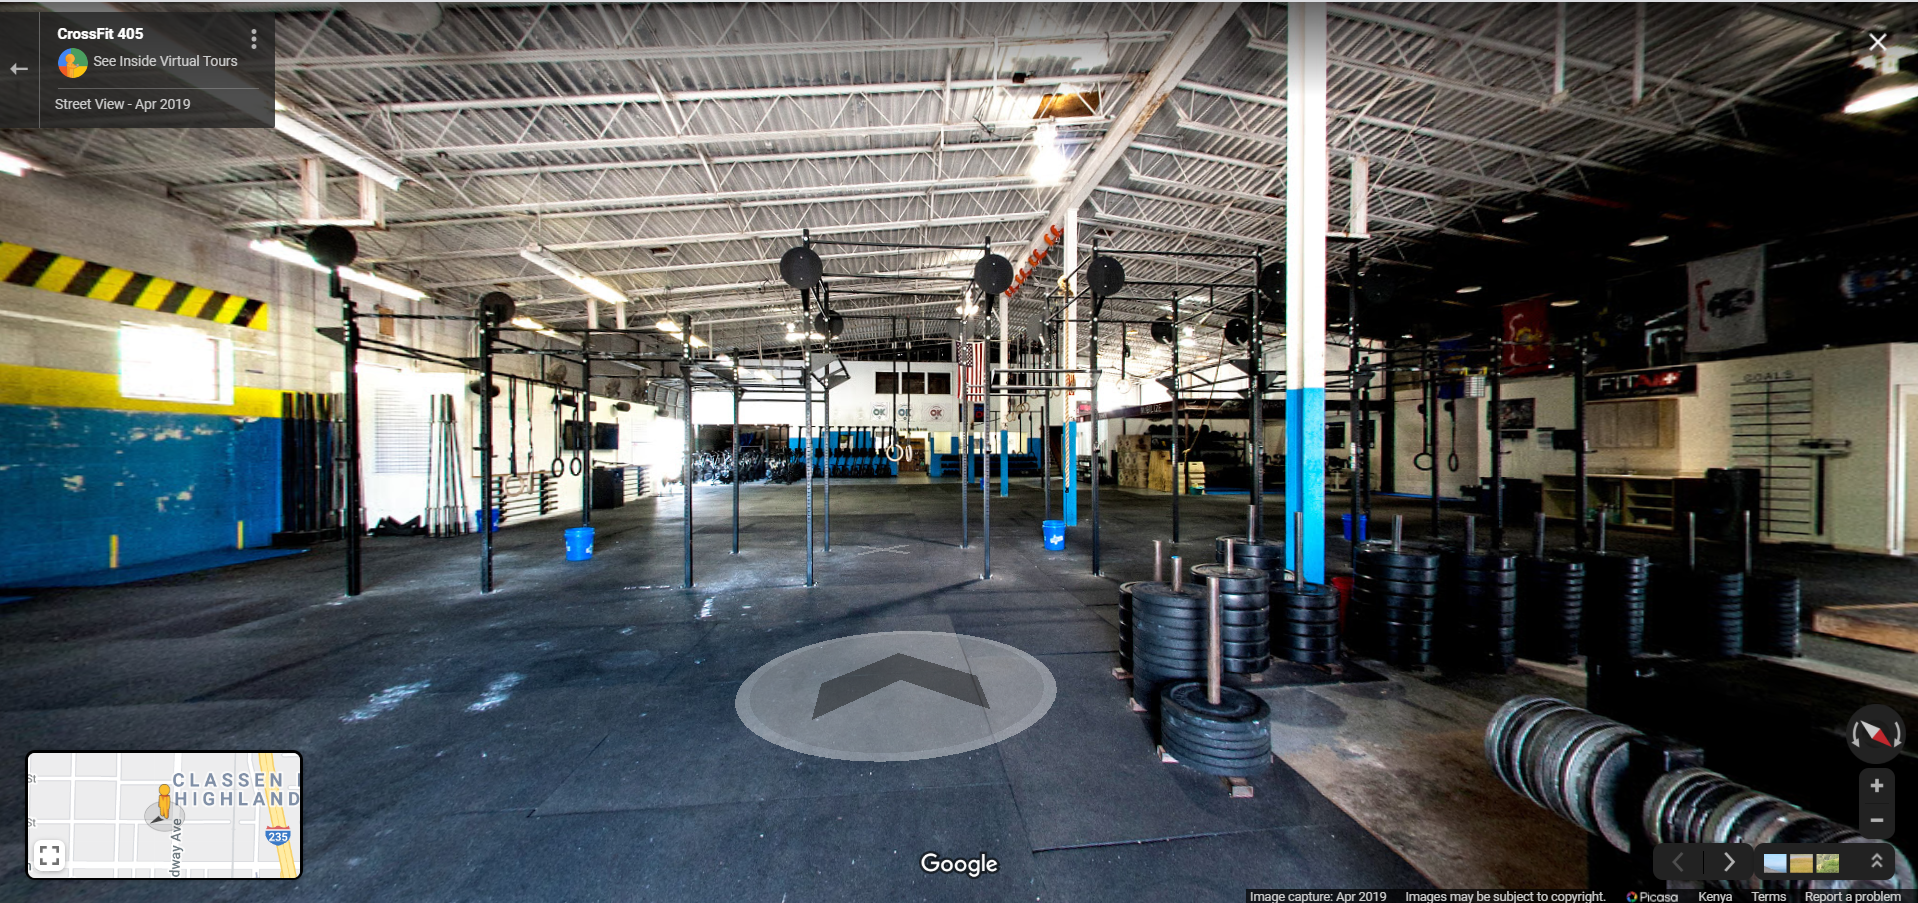 CrossFit 405 - Oklahoma City